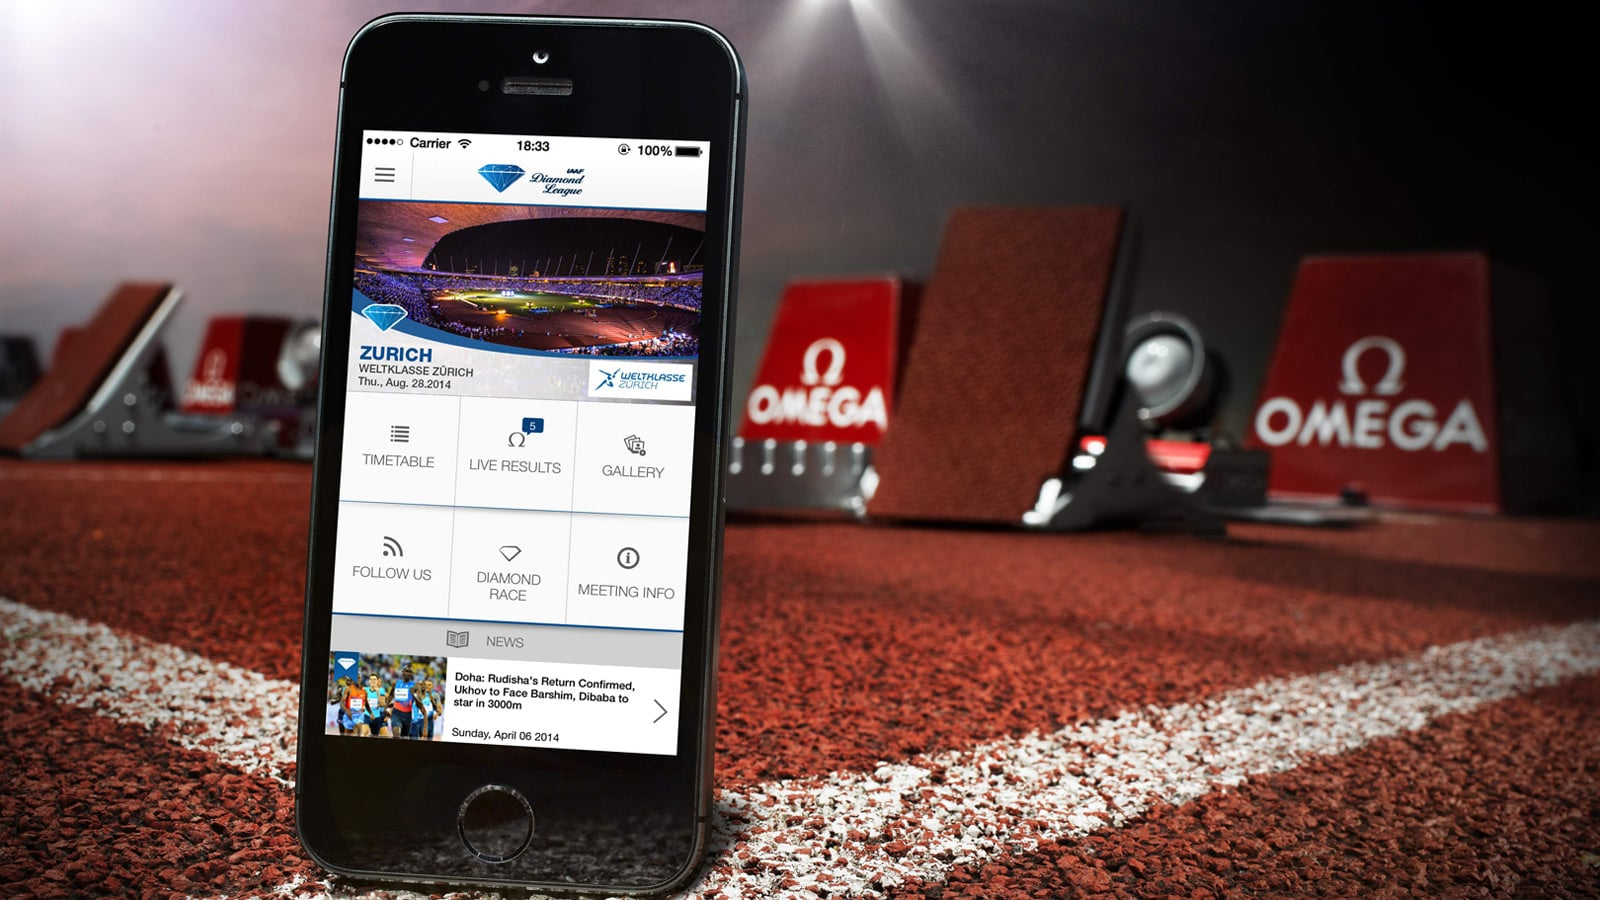 OMEGA's IAAF Diamond League mobile application